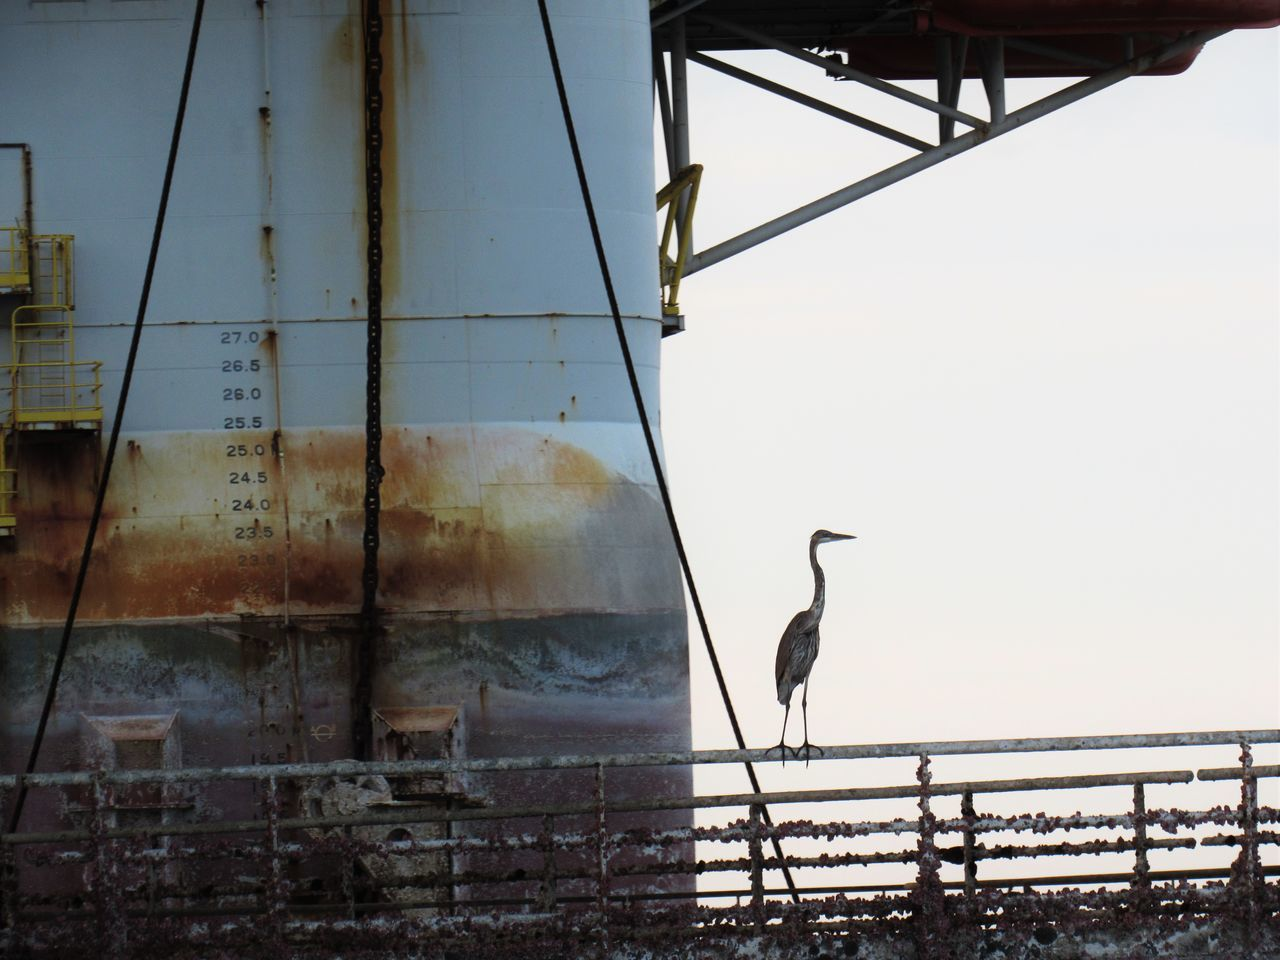 Blue Heron Animal Themes Animals In The Wild Bird Branch Calm Day Metal Nature No People Oil Rig In Background One Animal Outdoors Perching Sea Sky Standing Water Tranquility Walkway Water Waterfront Adapted To The City